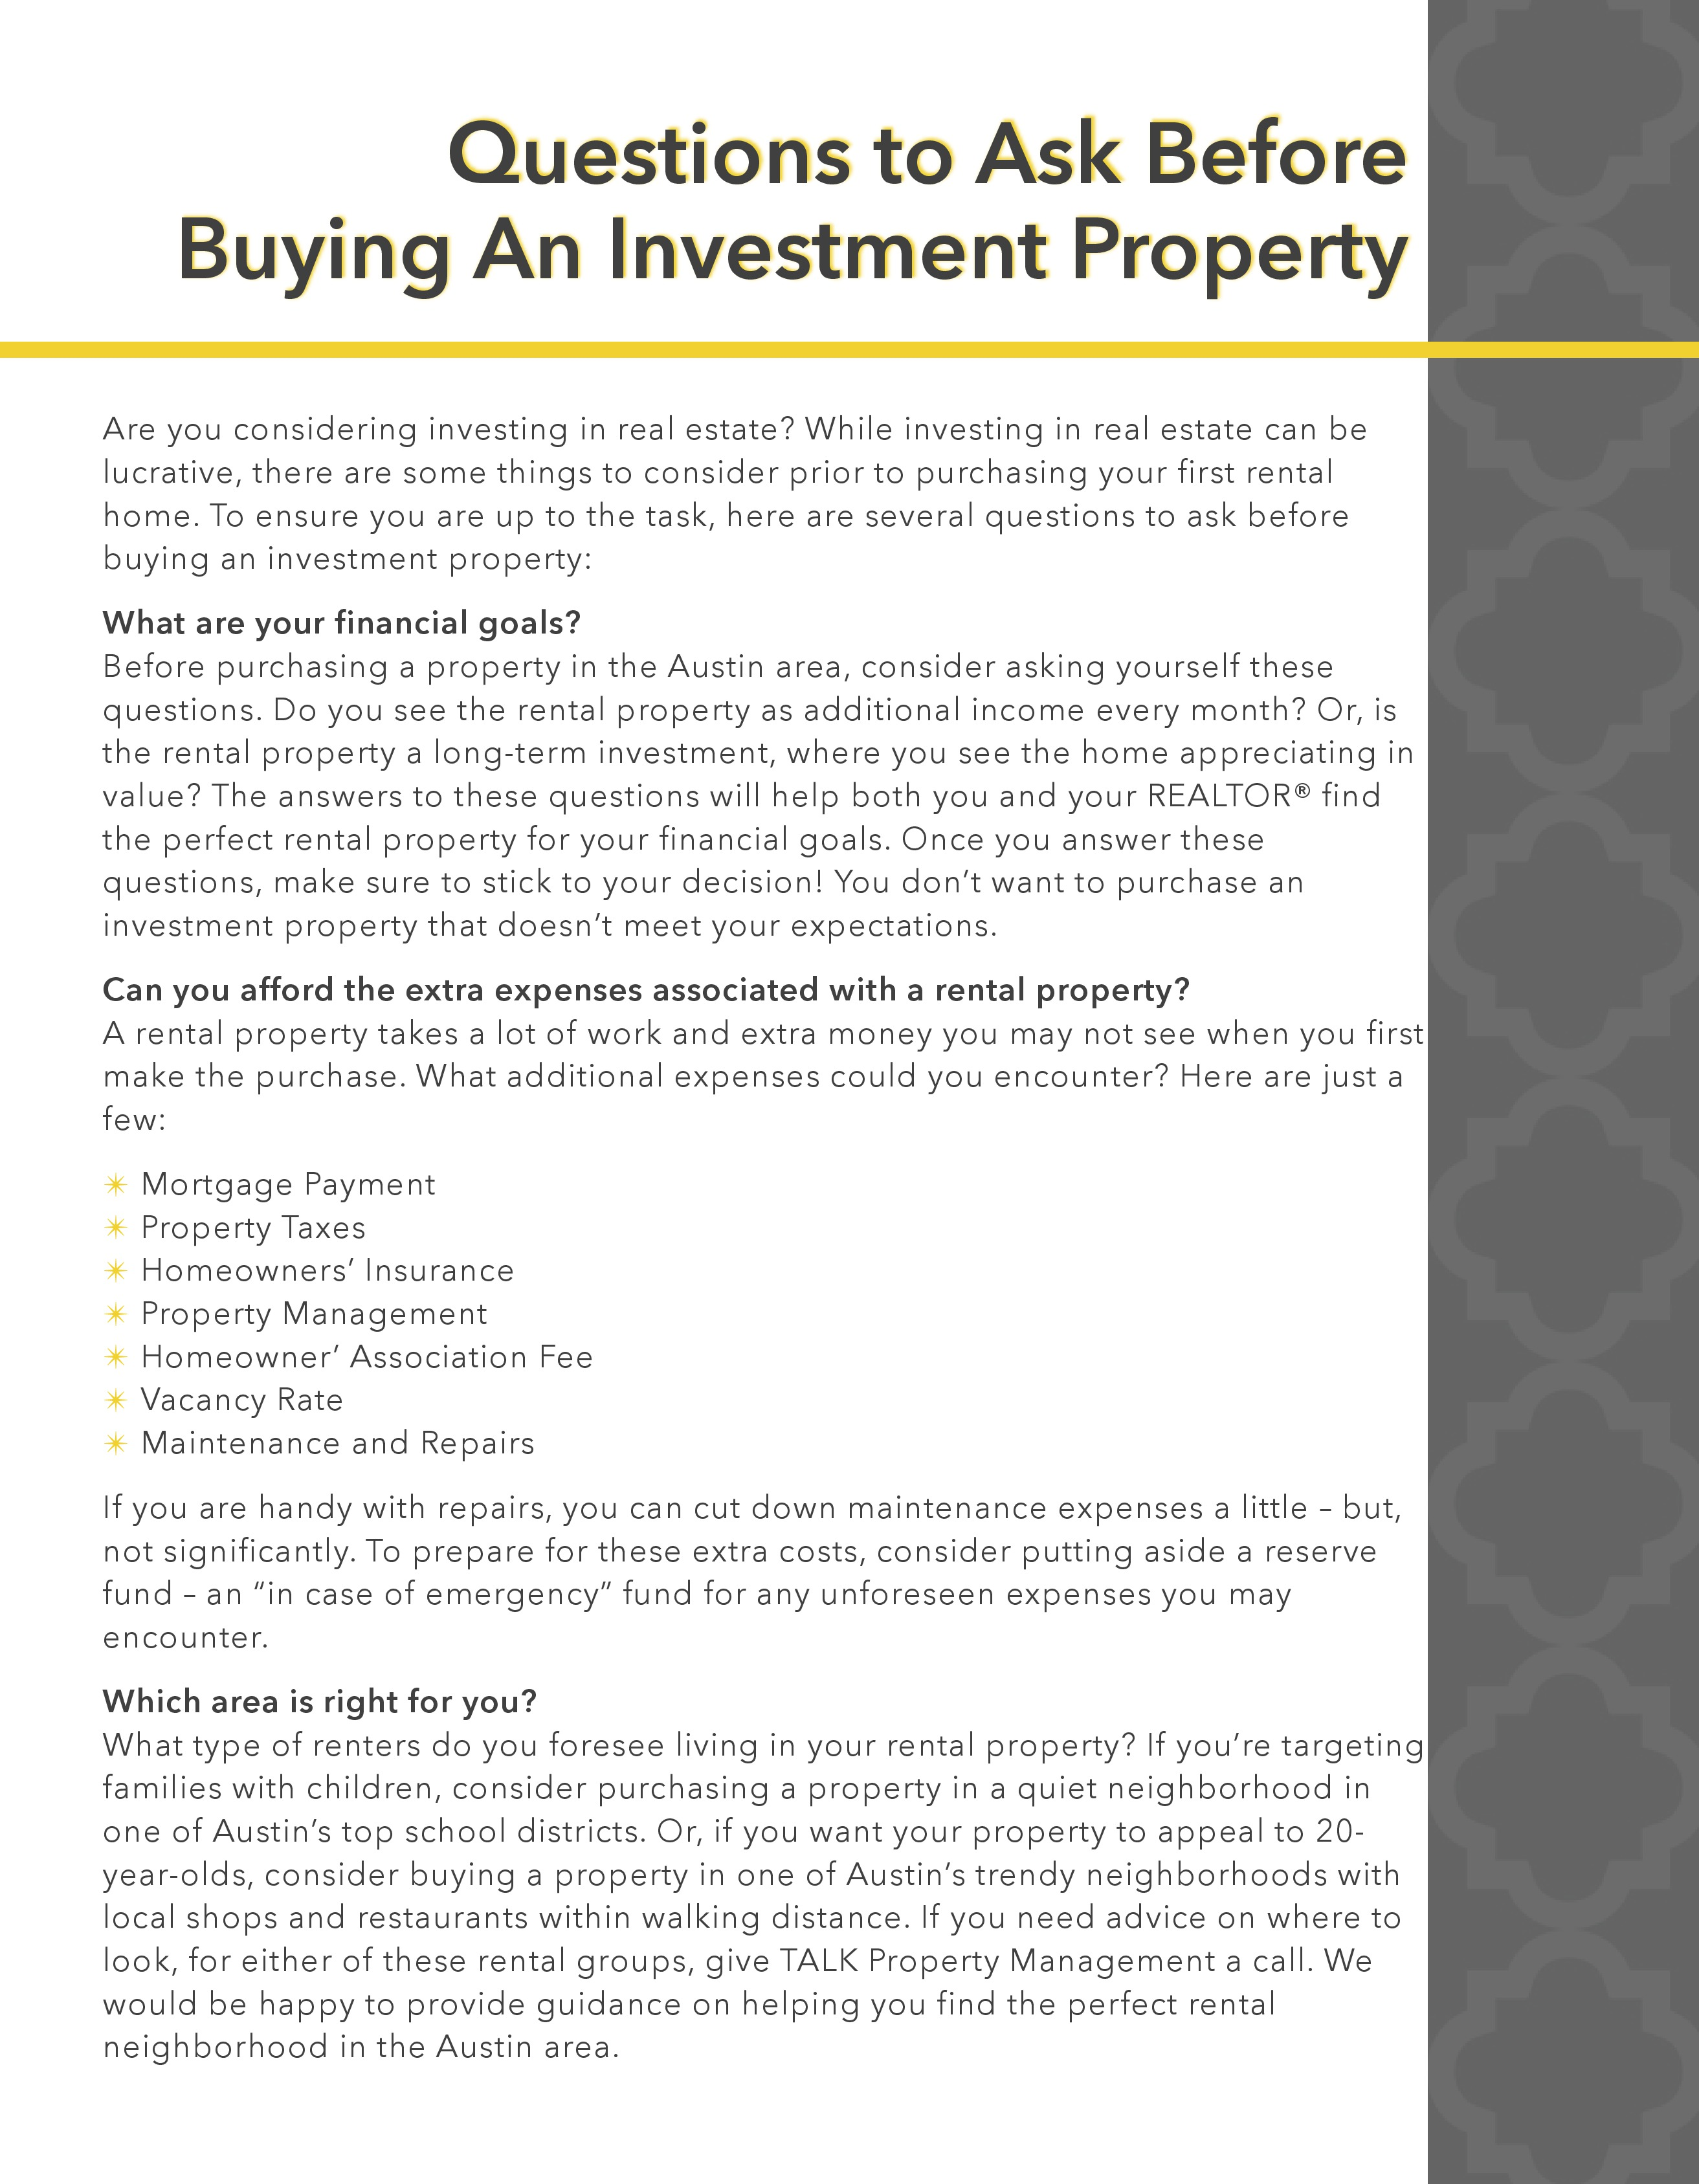 Guide to Real Estate Investing Property Management Package Tenant Package for Real Estate and REALTORS Agent Operations real estate marketing